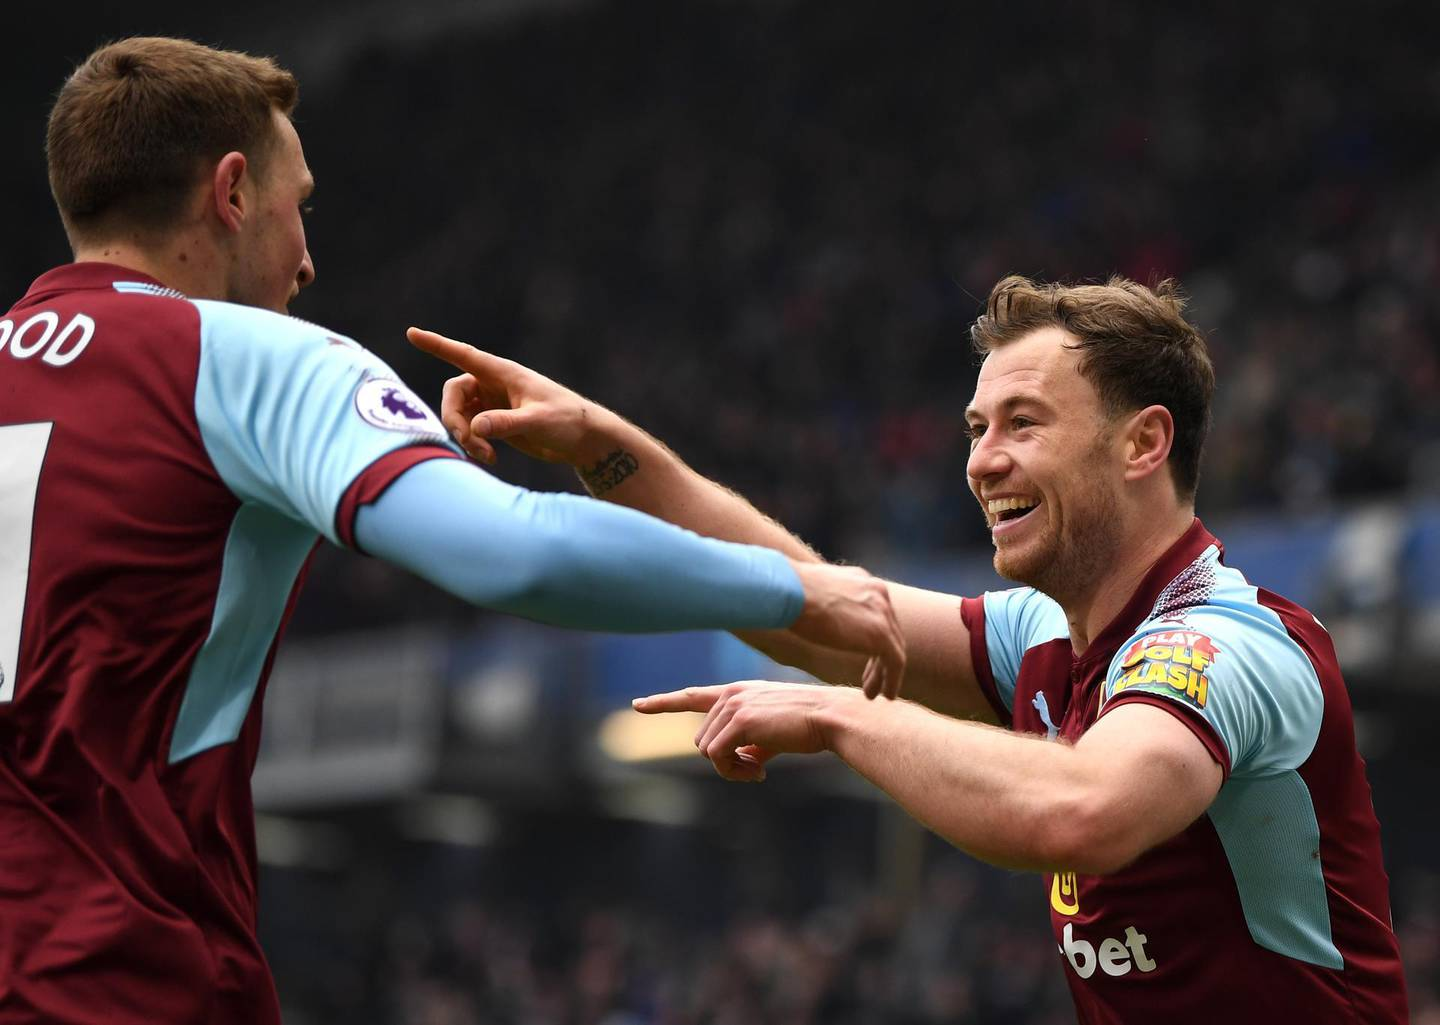 BURNLEY, ENGLAND - MARCH 03:  Ashley Barnes of Burnley celebrates scoring his side's first goal with Chris Wood during the Premier League match between Burnley and Everton at Turf Moor on March 3, 2018 in Burnley, England.  (Photo by Gareth Copley/Getty Images)